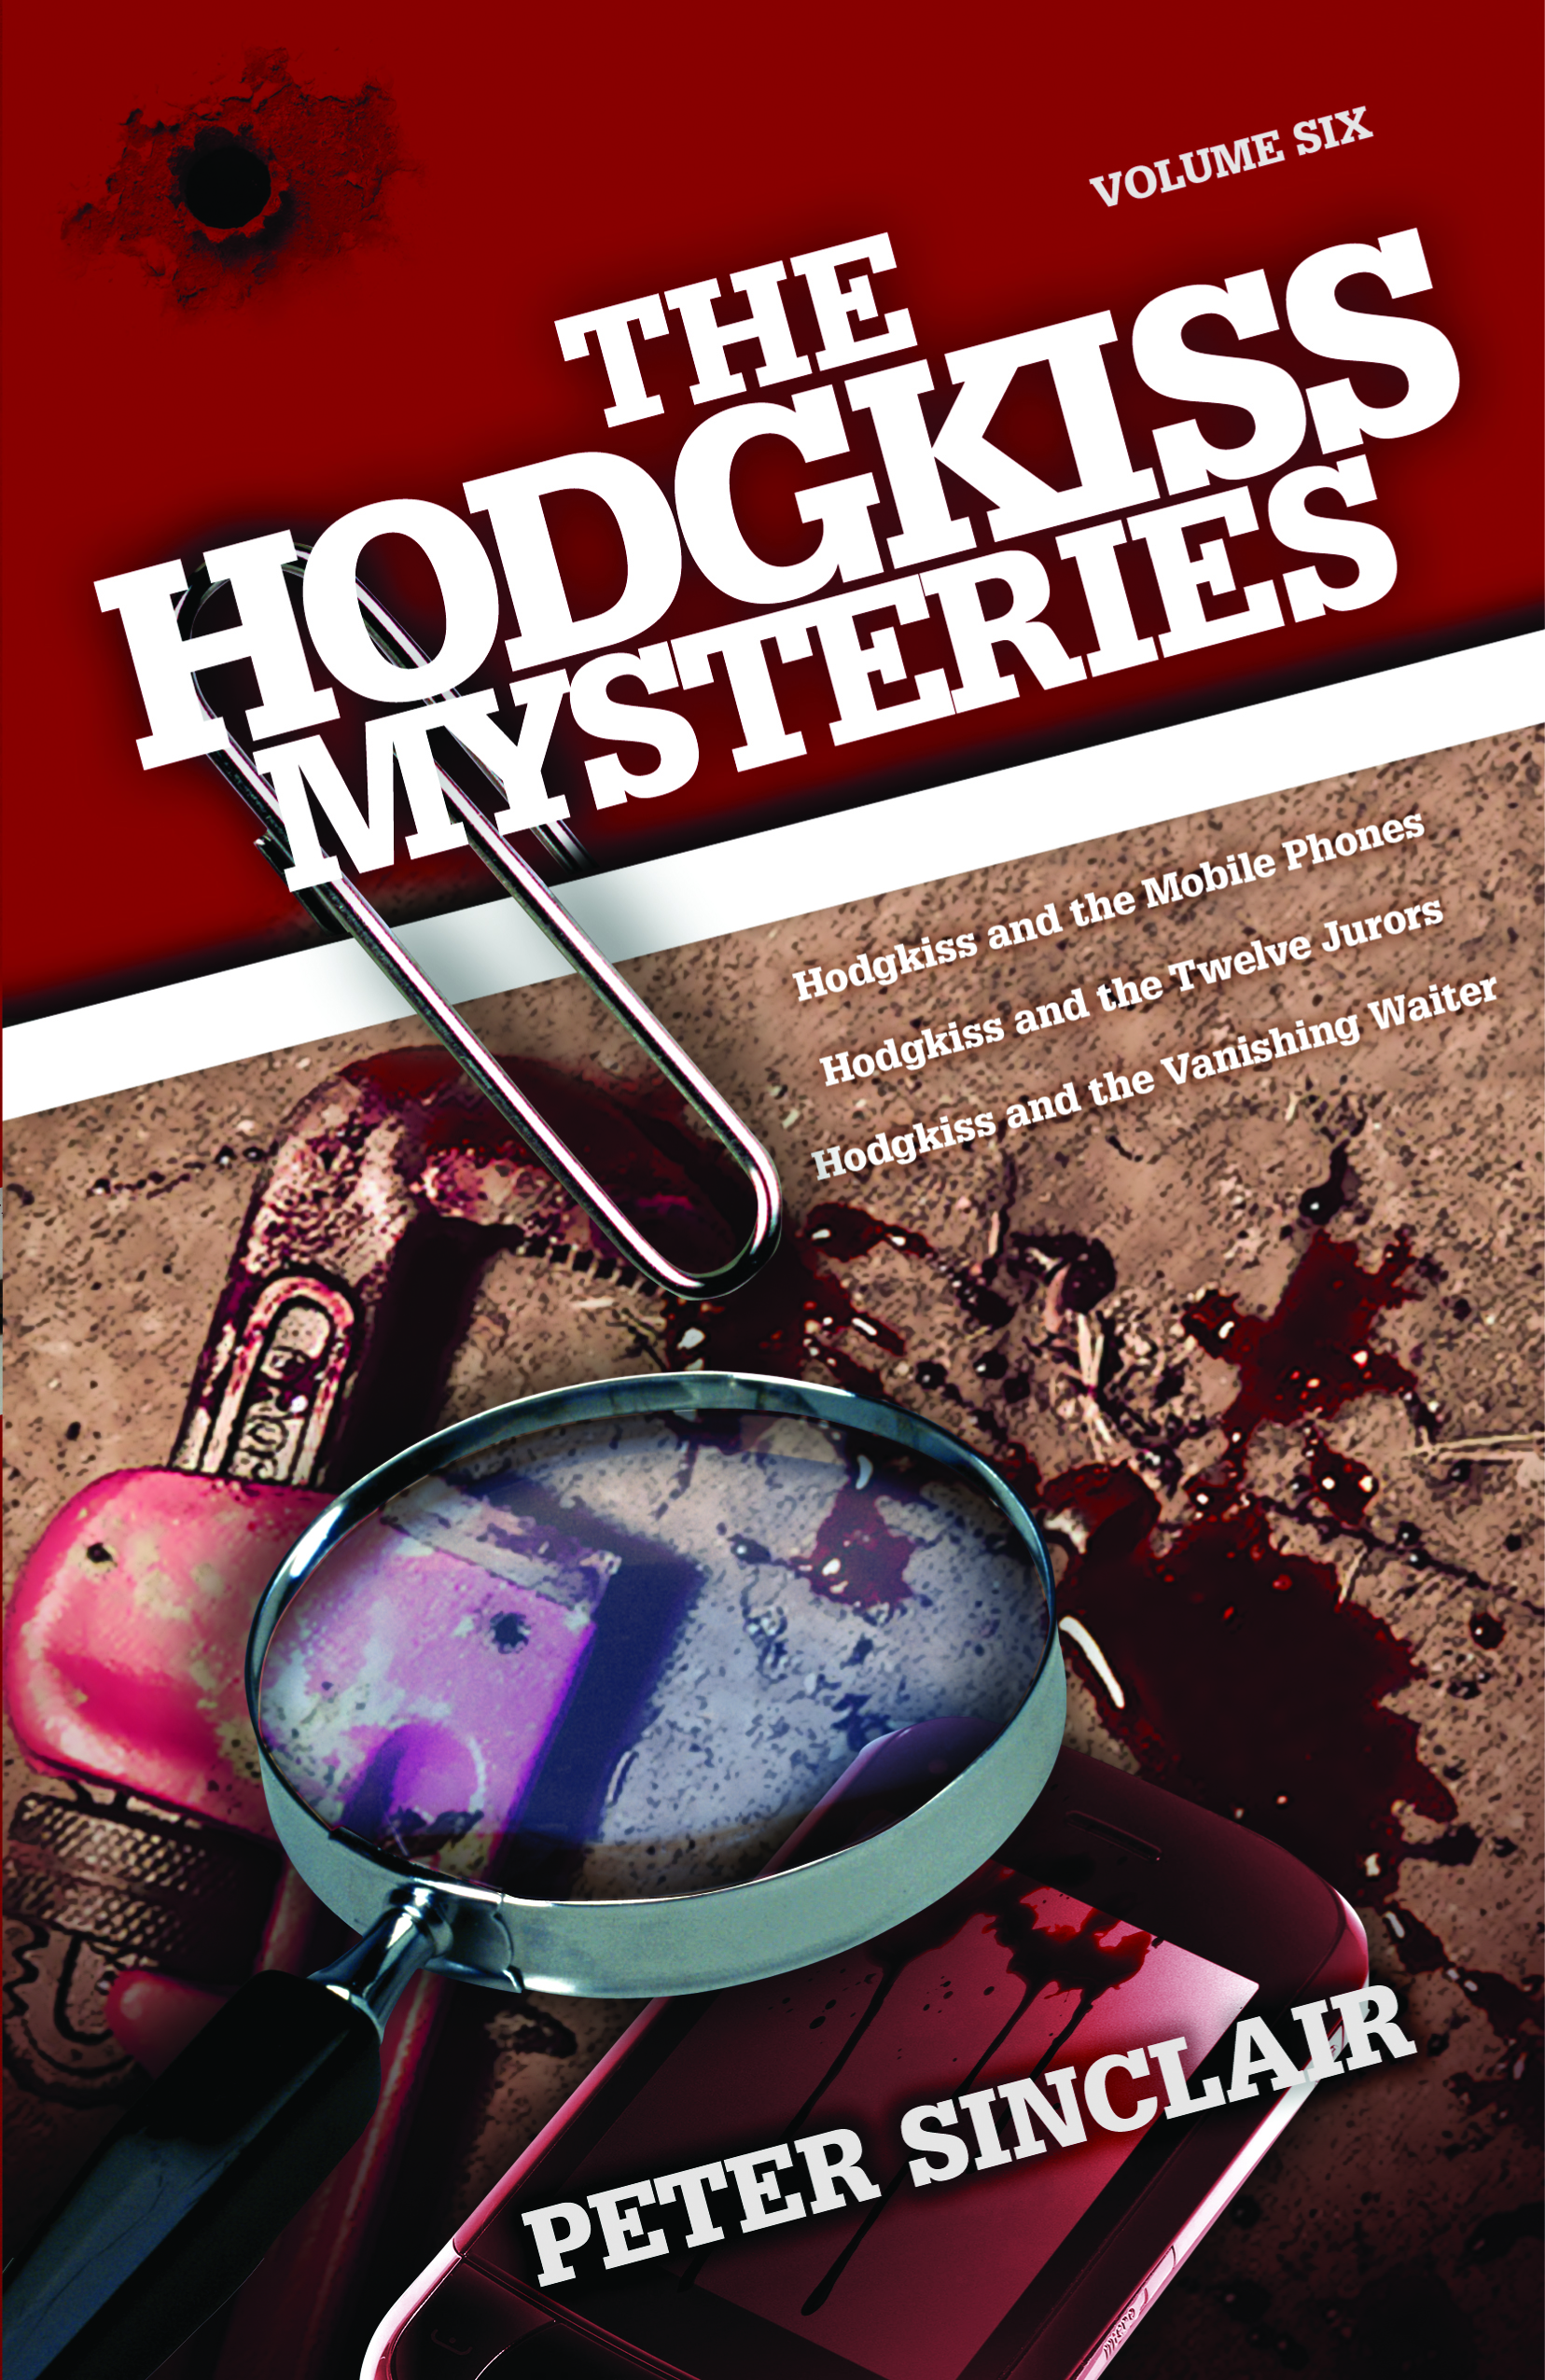 Hodgkiss Mysteries_cover_VOL VI.jpg